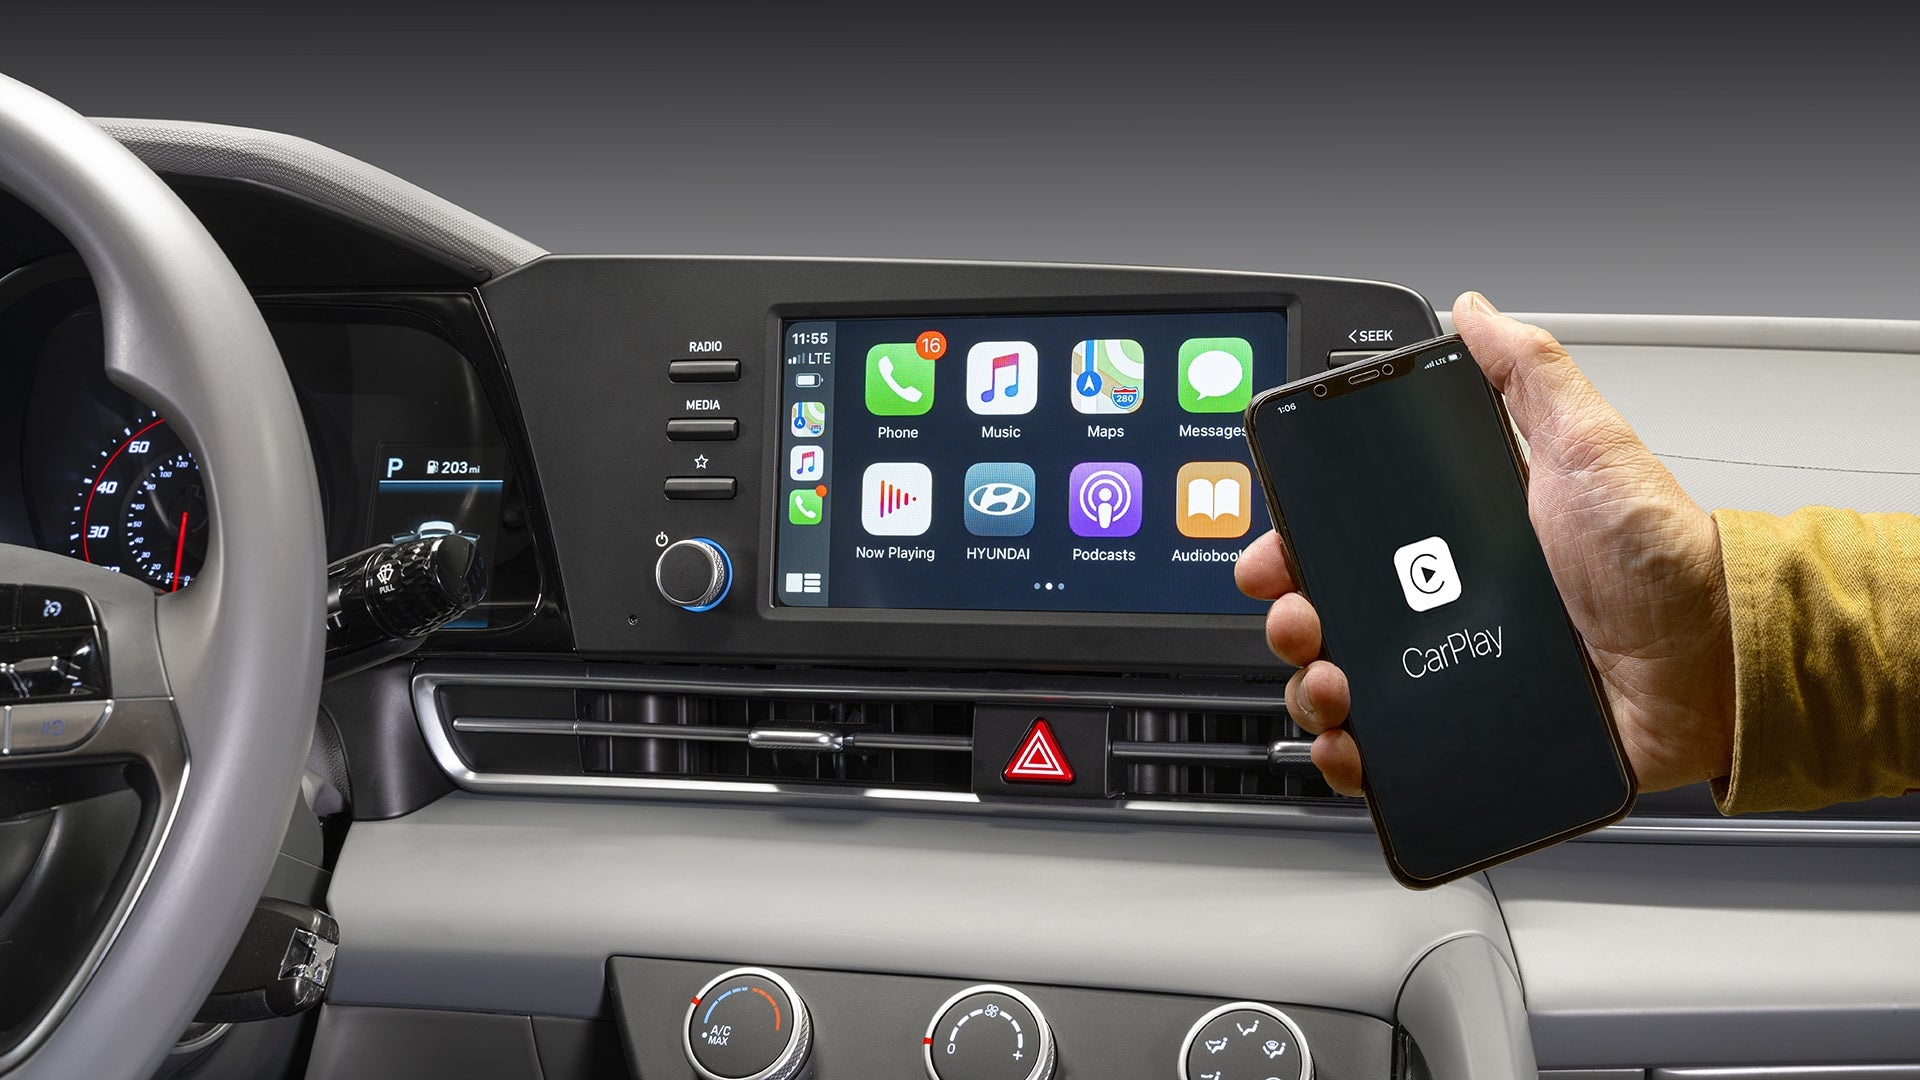 Apple CarPlay in a Hyundai Elantra.